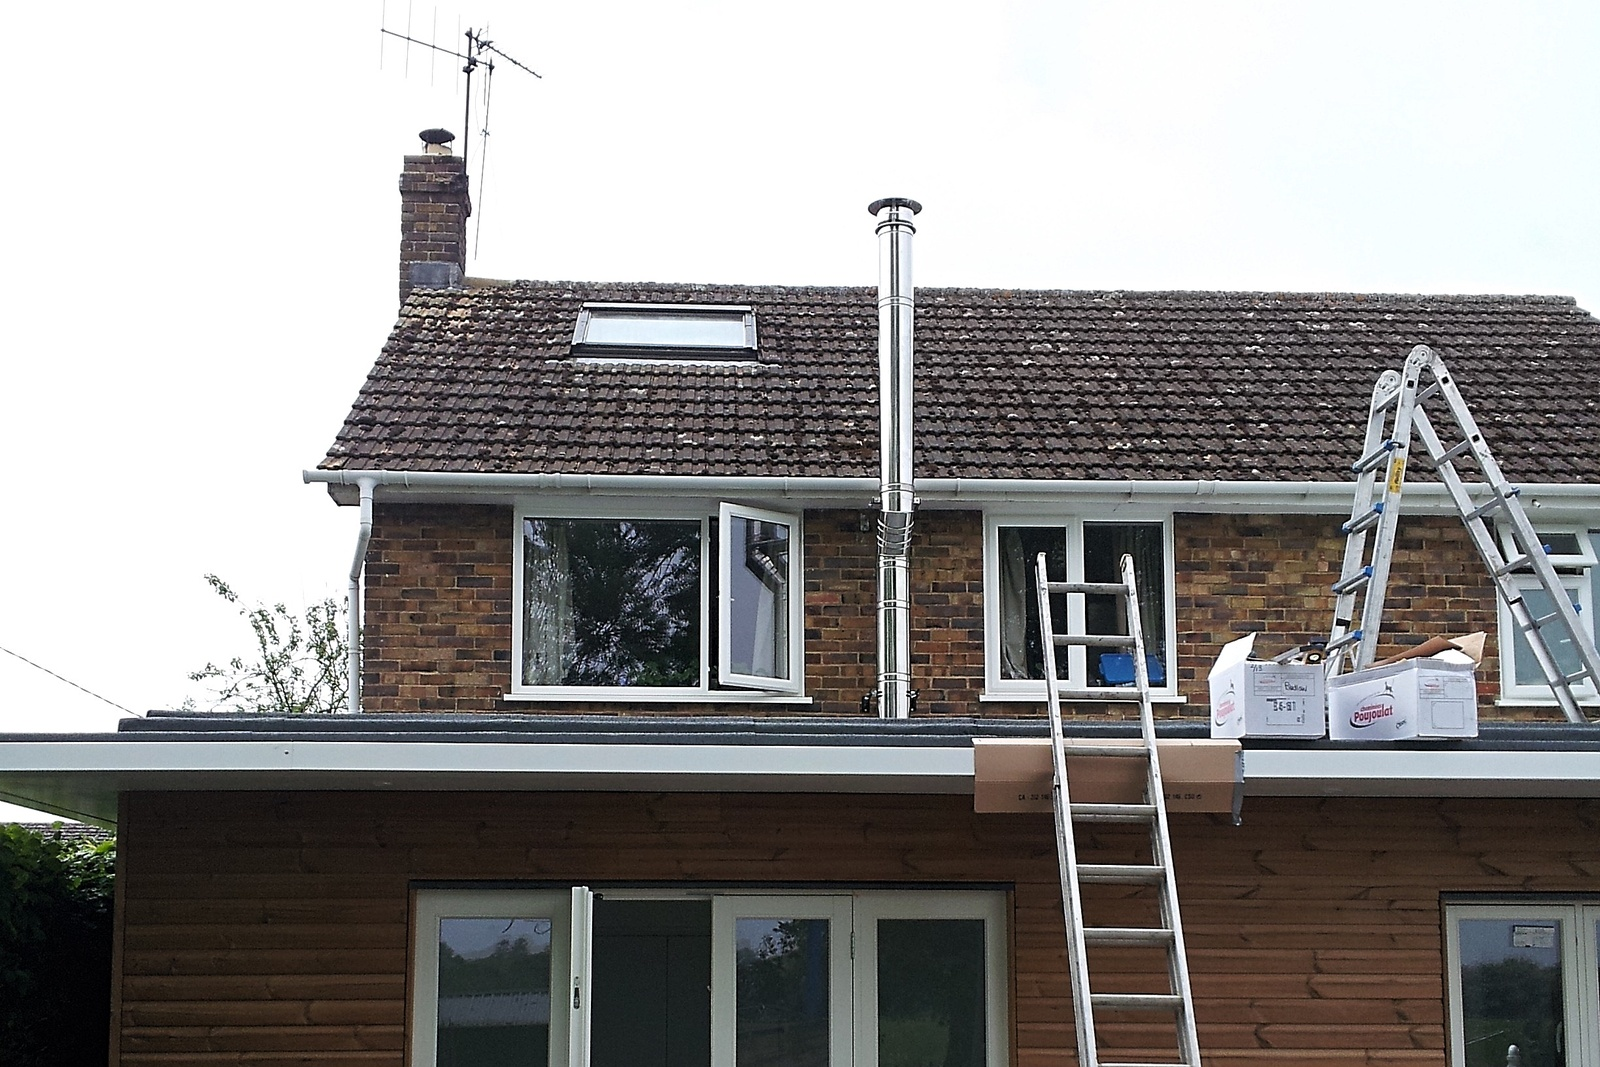 This rear kitchen extension integrates neatly with the main house which supports the twin wall flue.